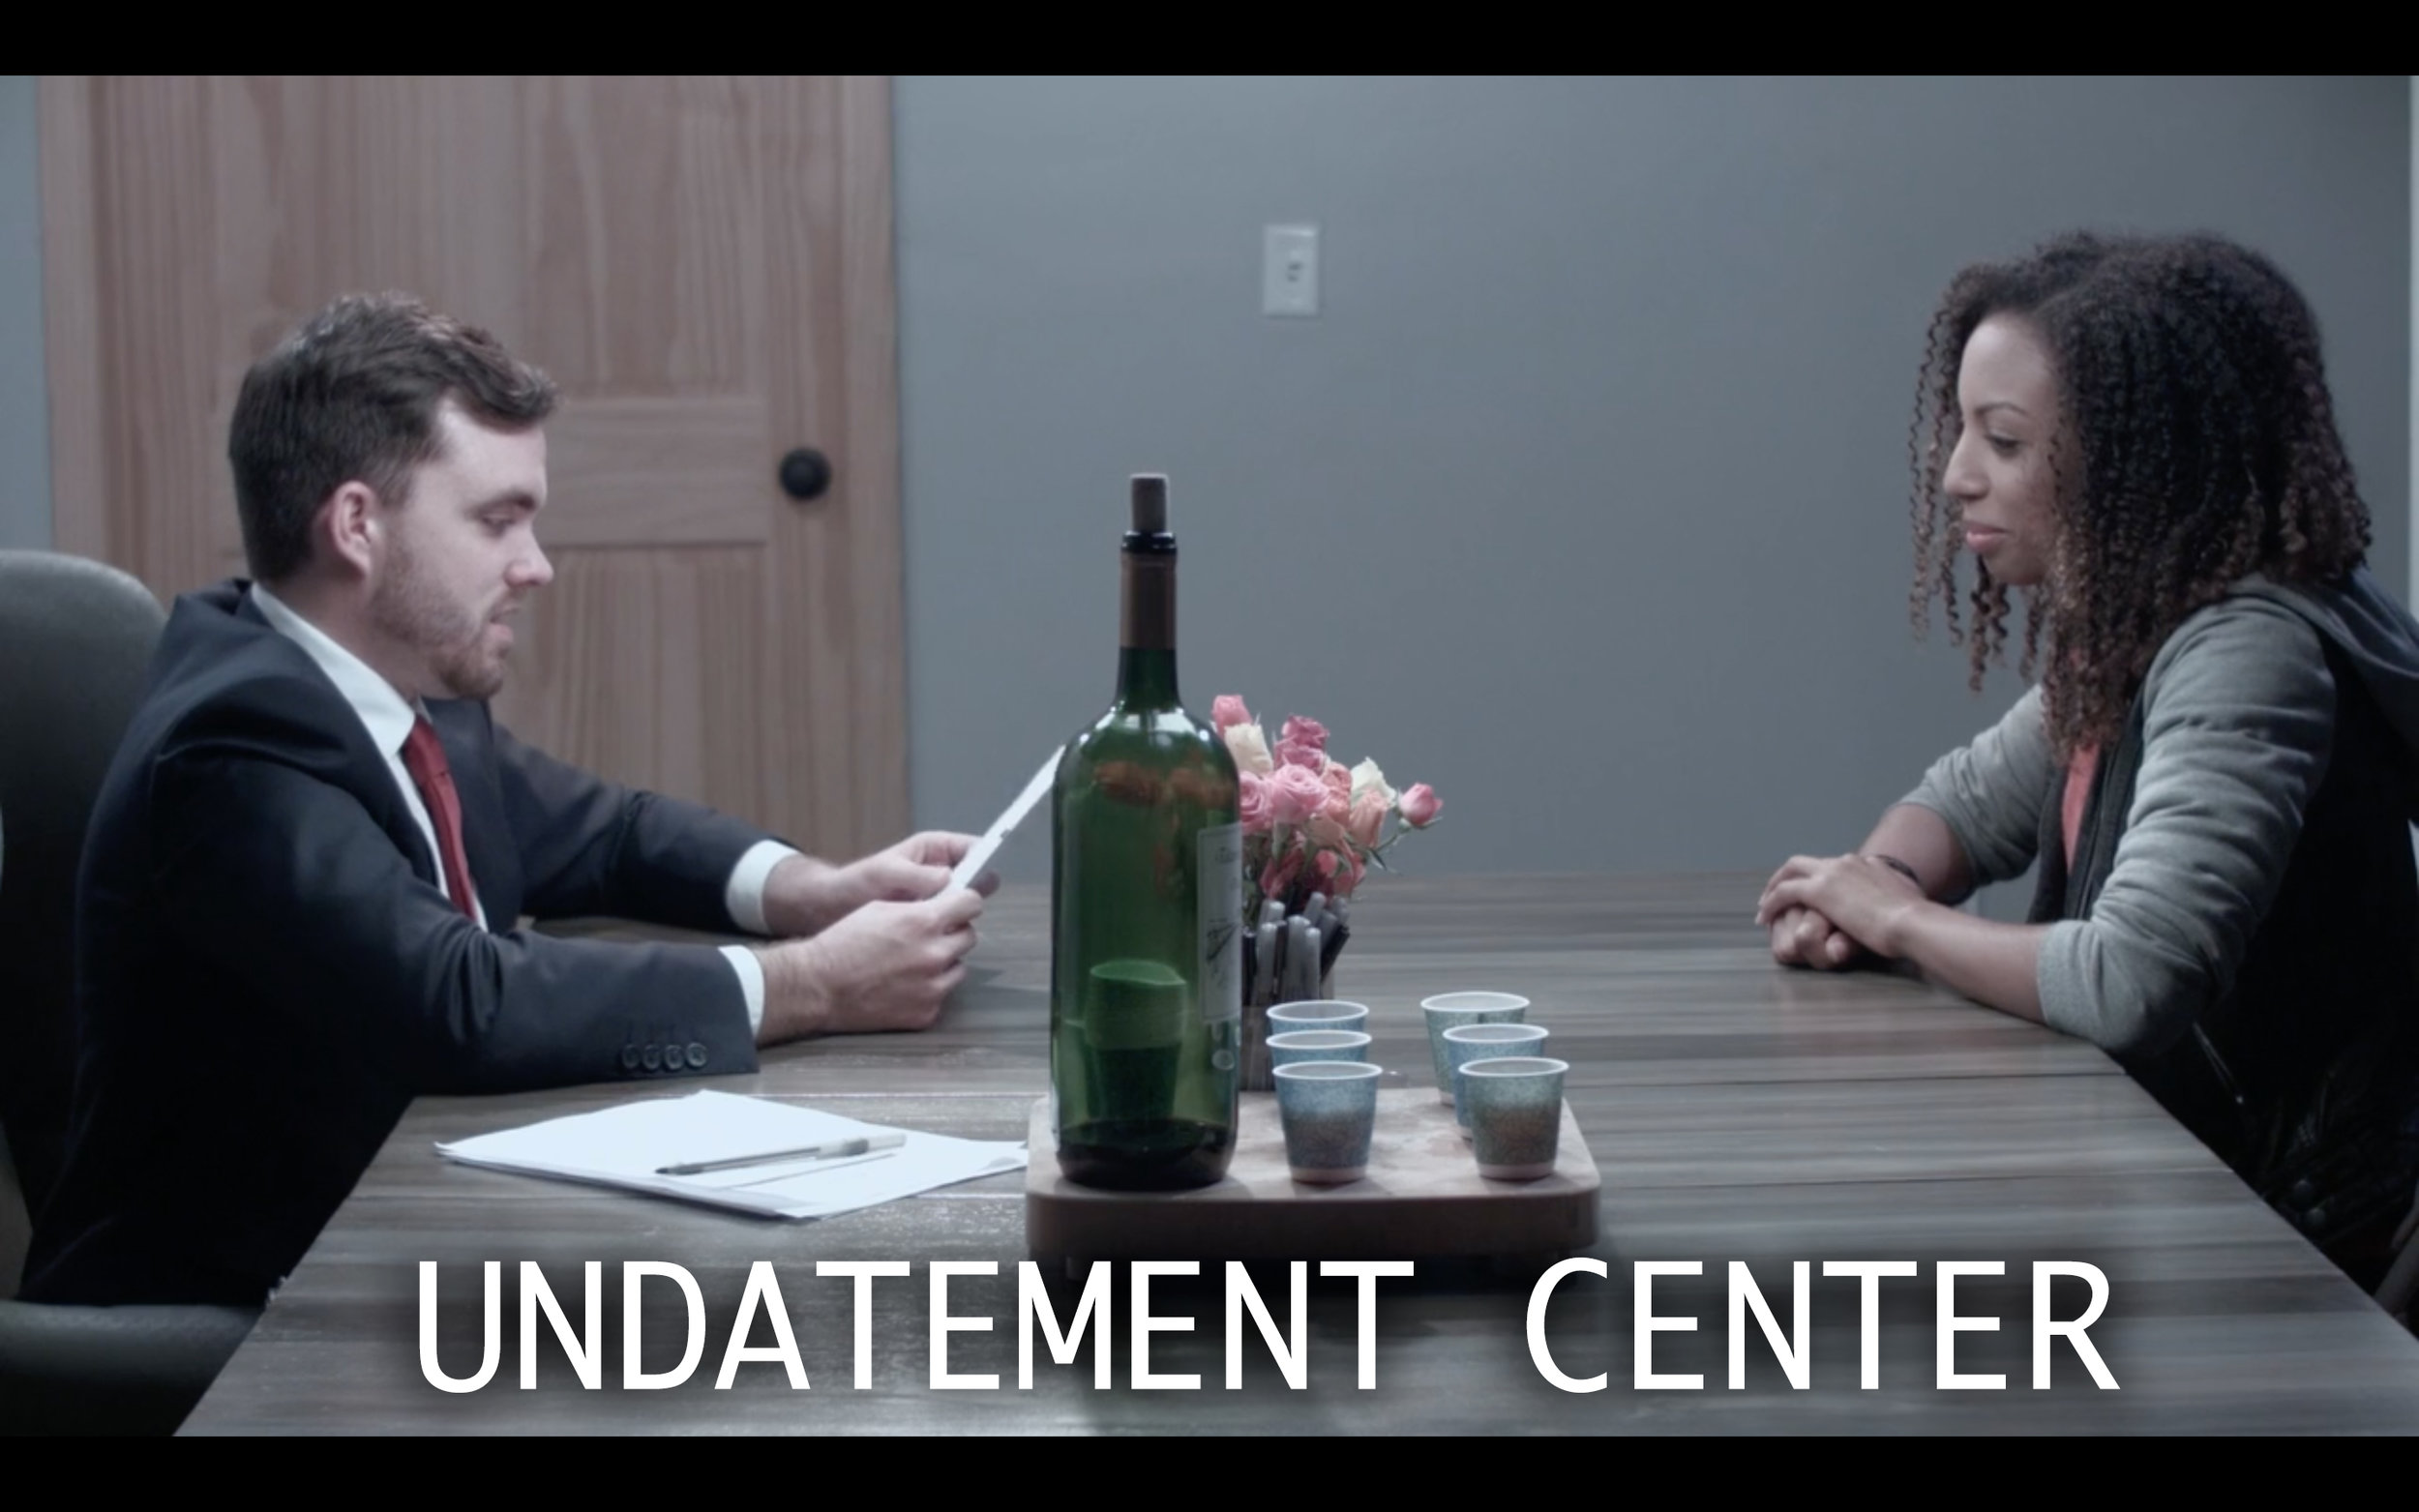 """Undatement Center""  (2017)"